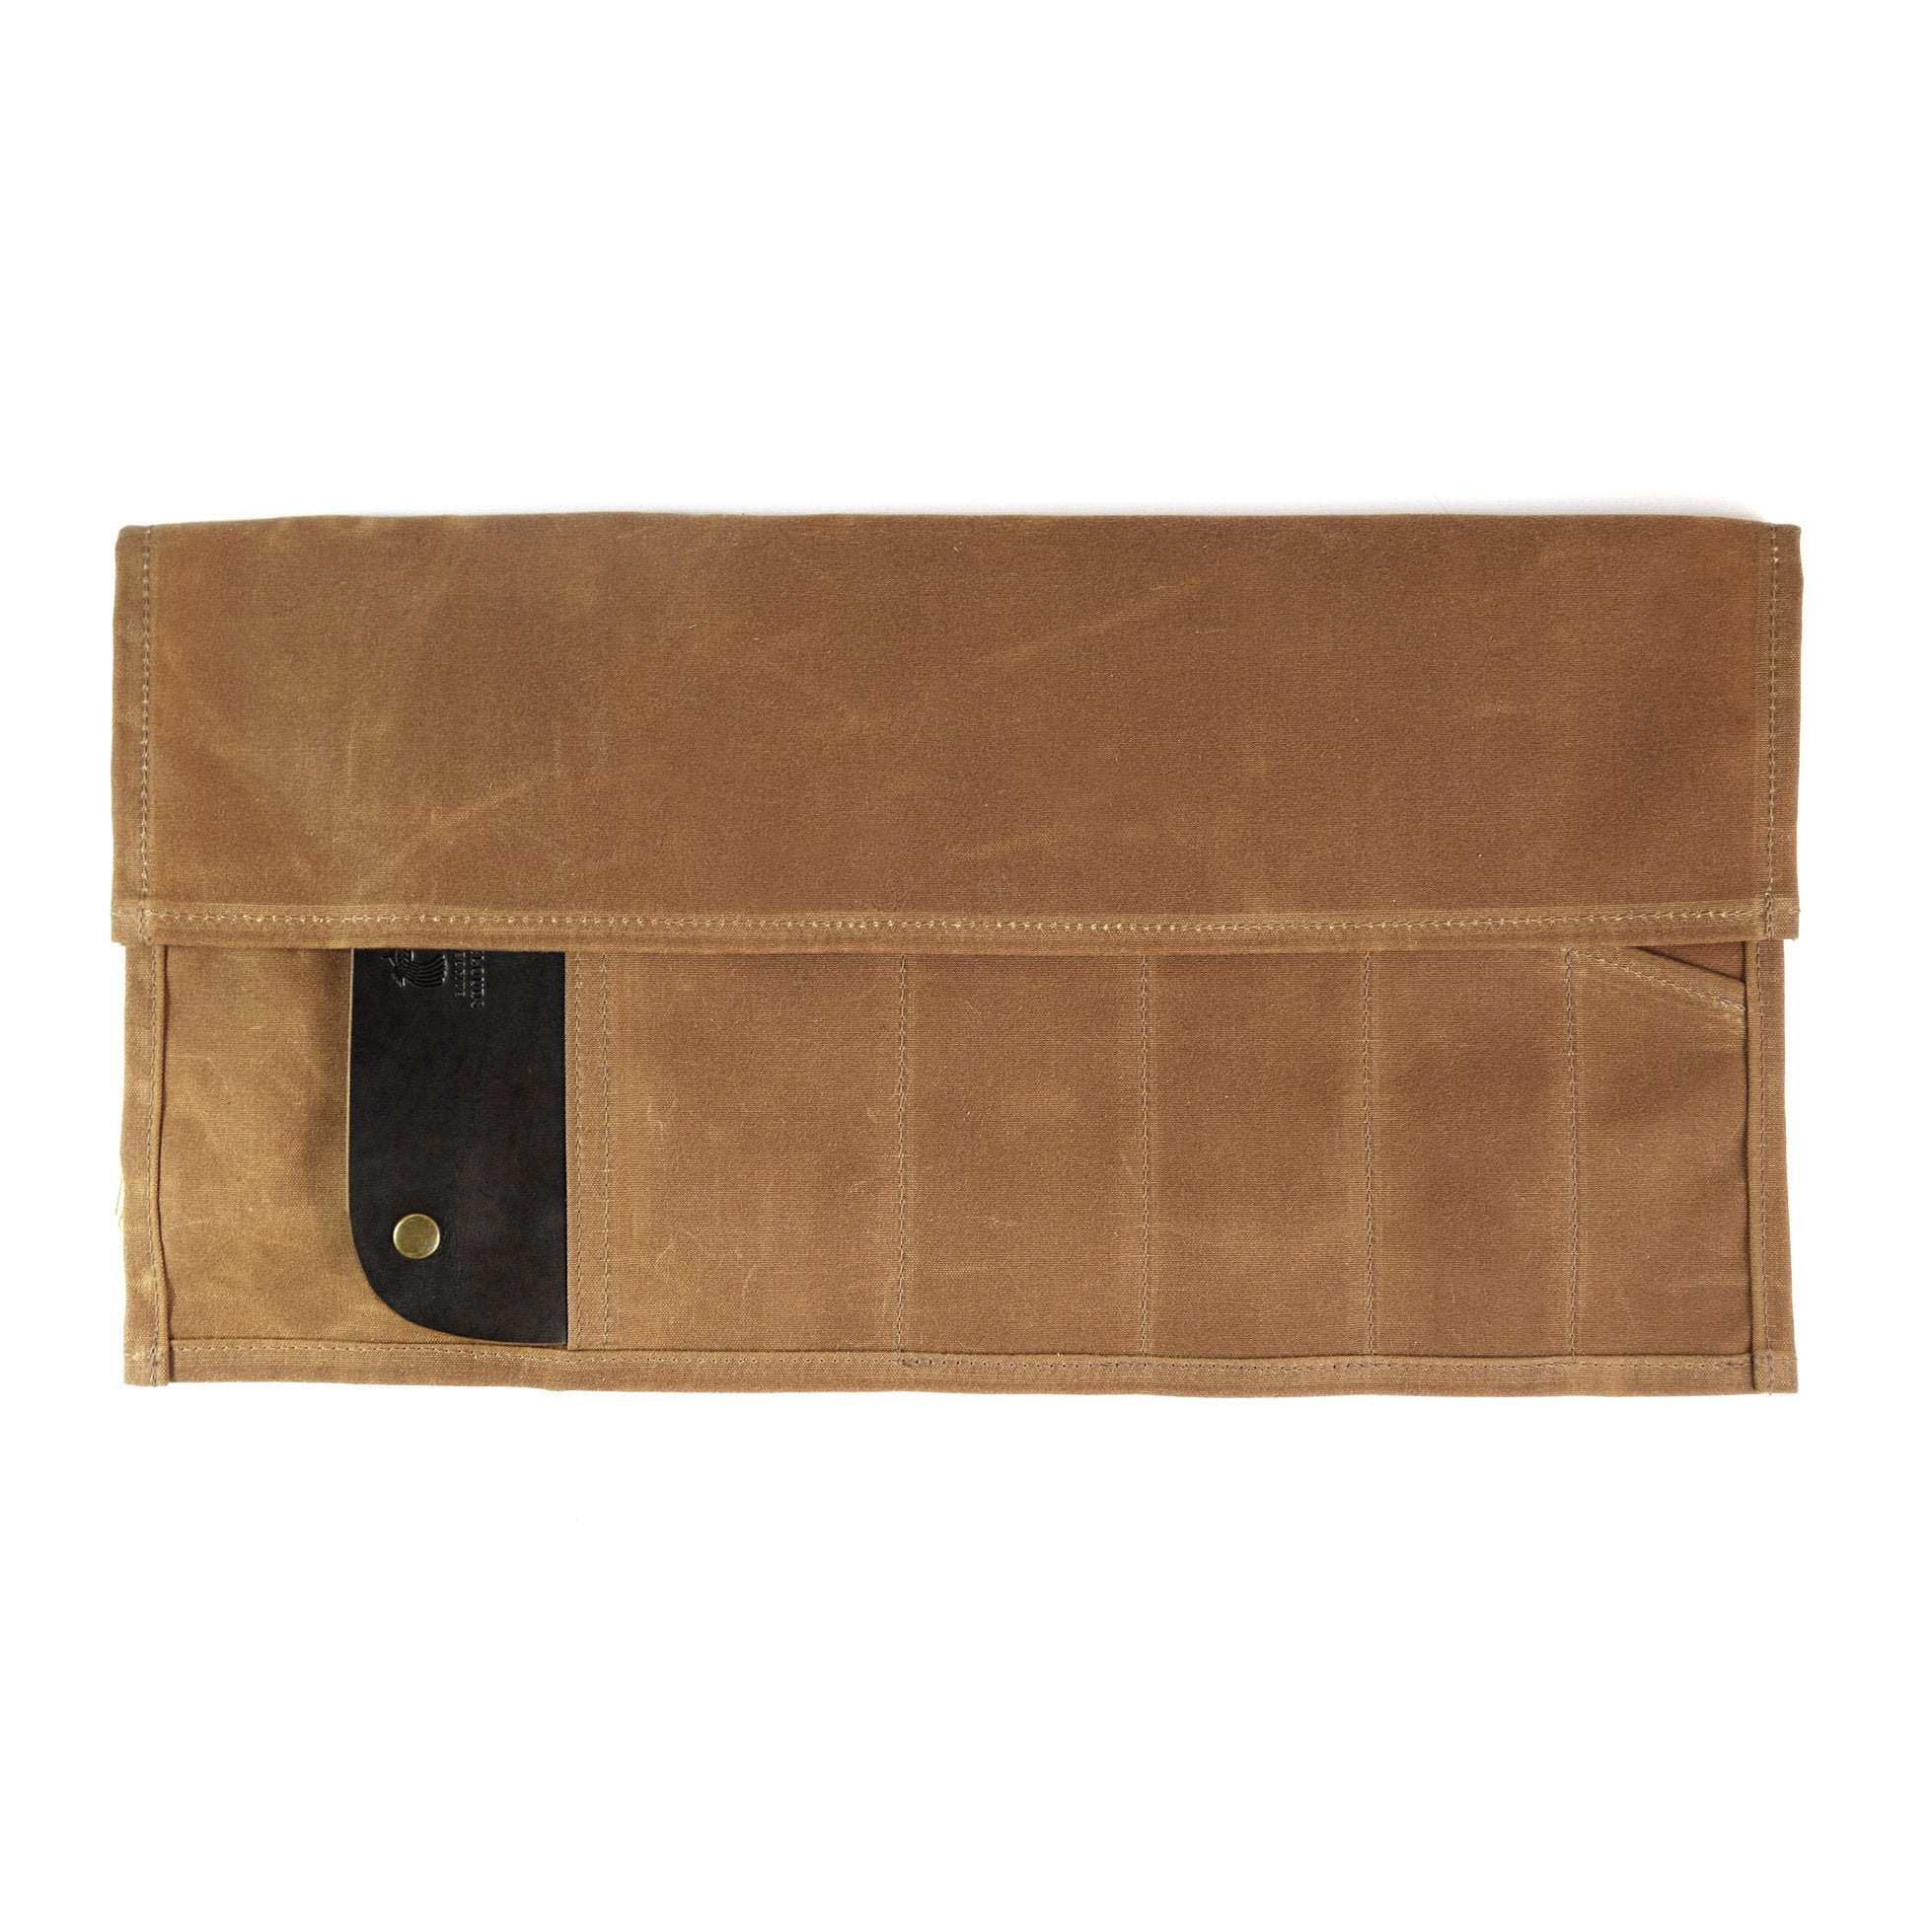 Landseer Tool Roll - Brush Brown / Black